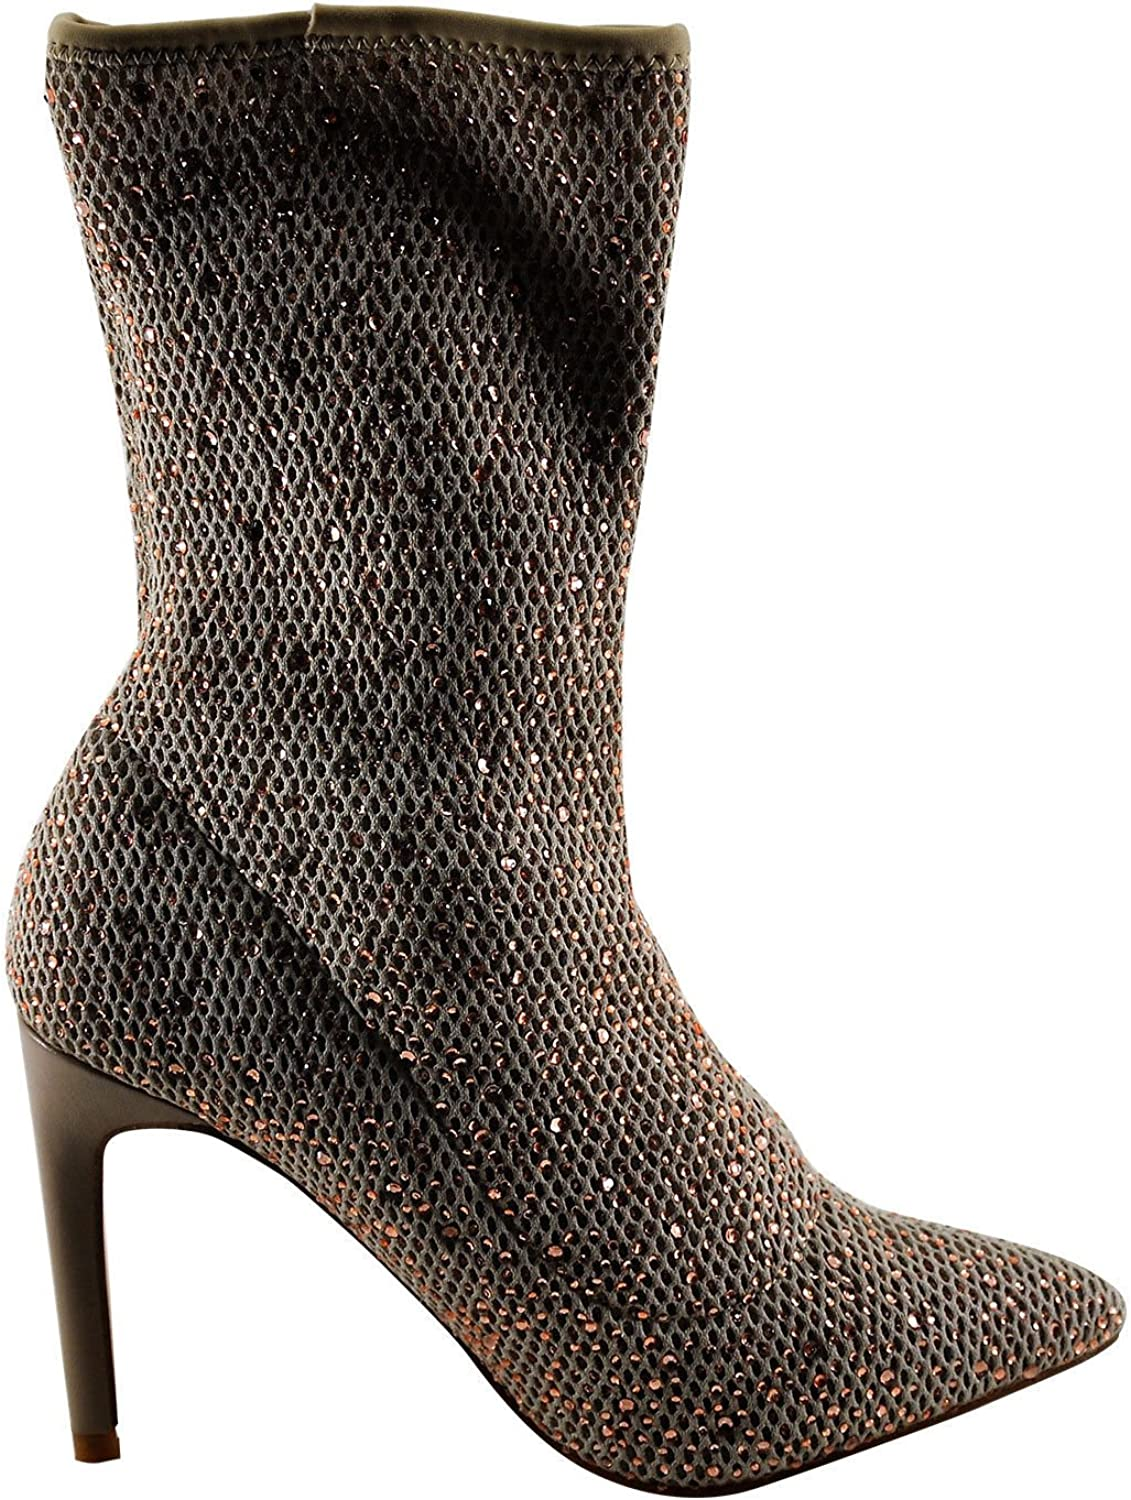 CAPE ROBBIN Tina 1 Women's Slouchy Metallic Netted Heeled Boot